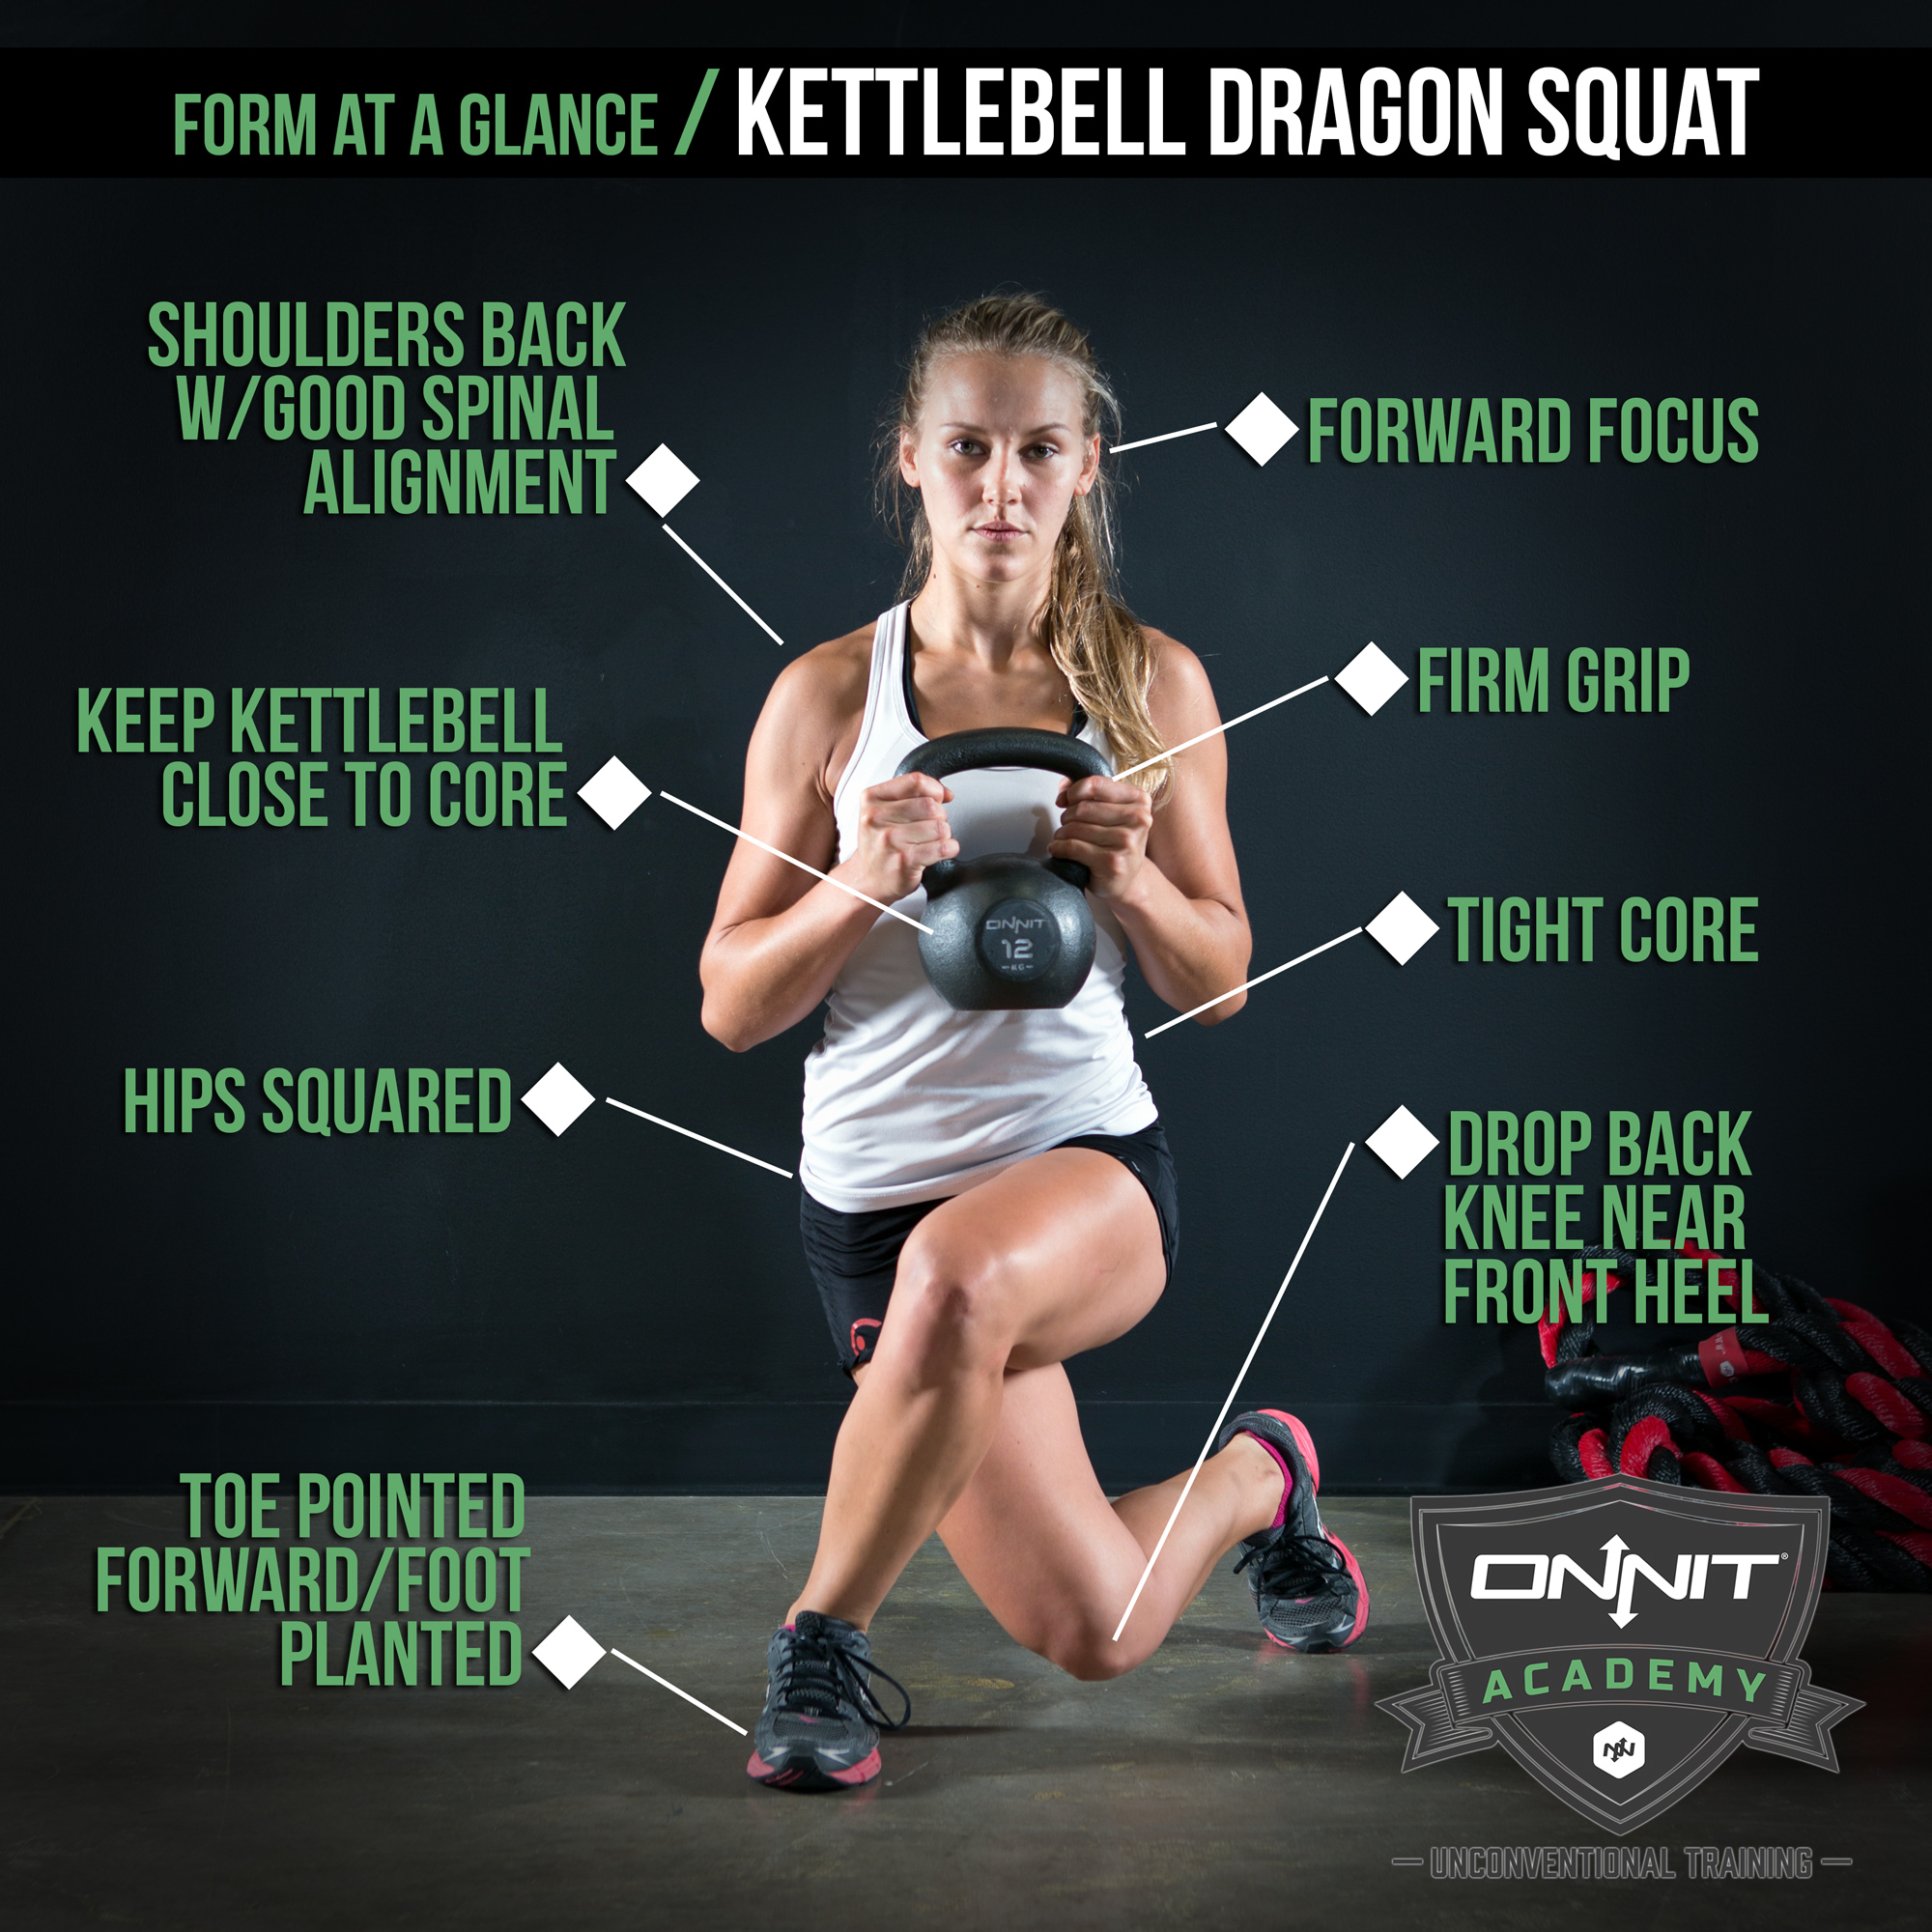 Form At A Glance: Kettlebell Dragon Squat